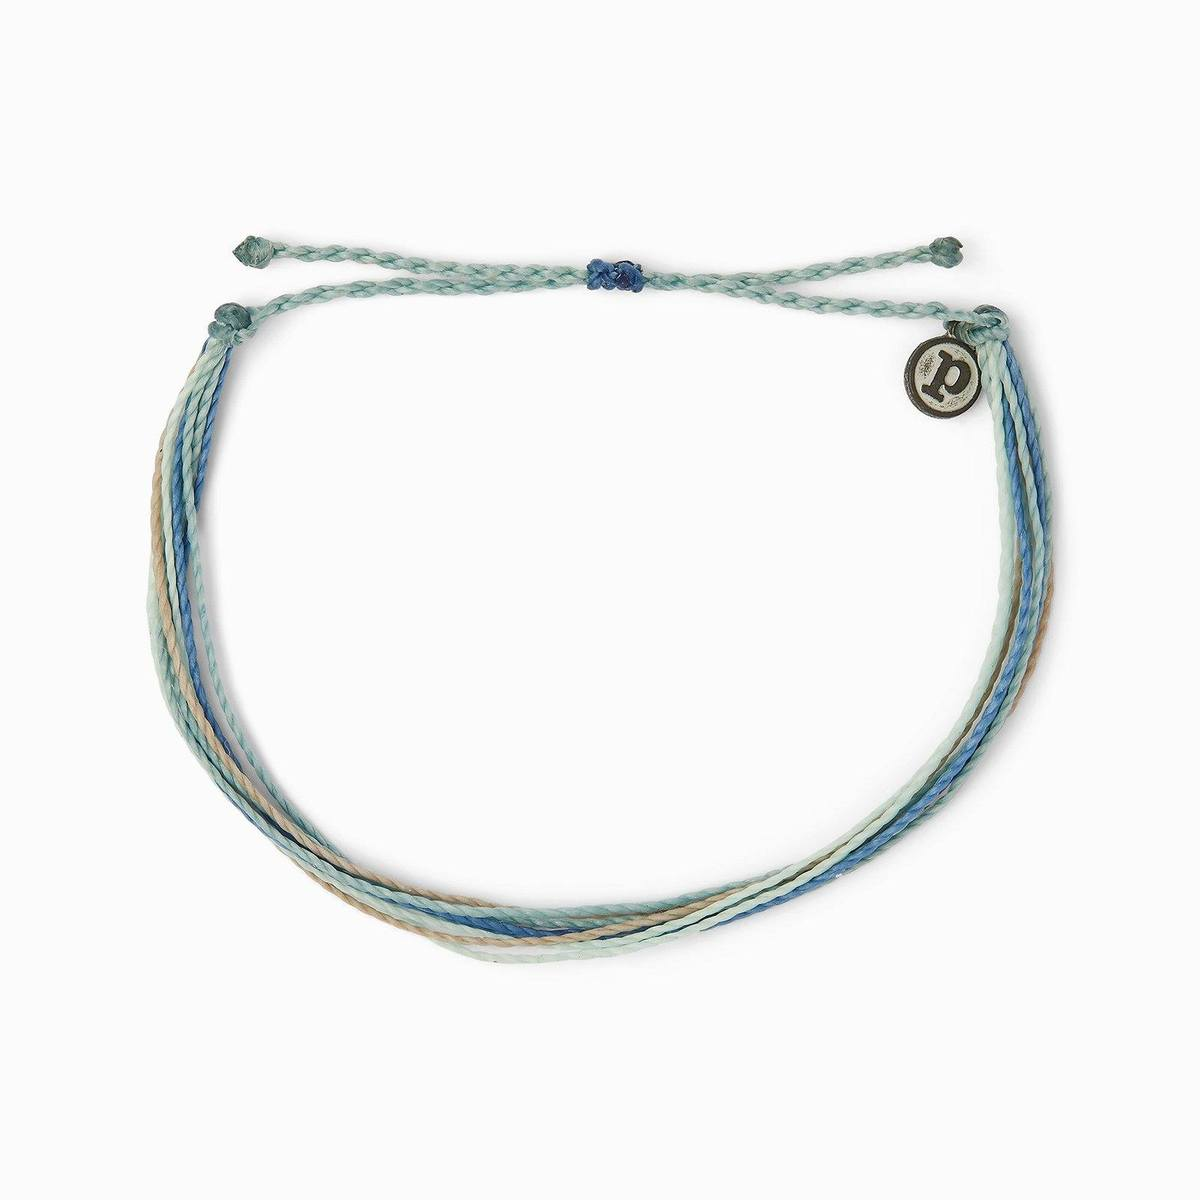 April Showers Originals Anklet by Pura Vida